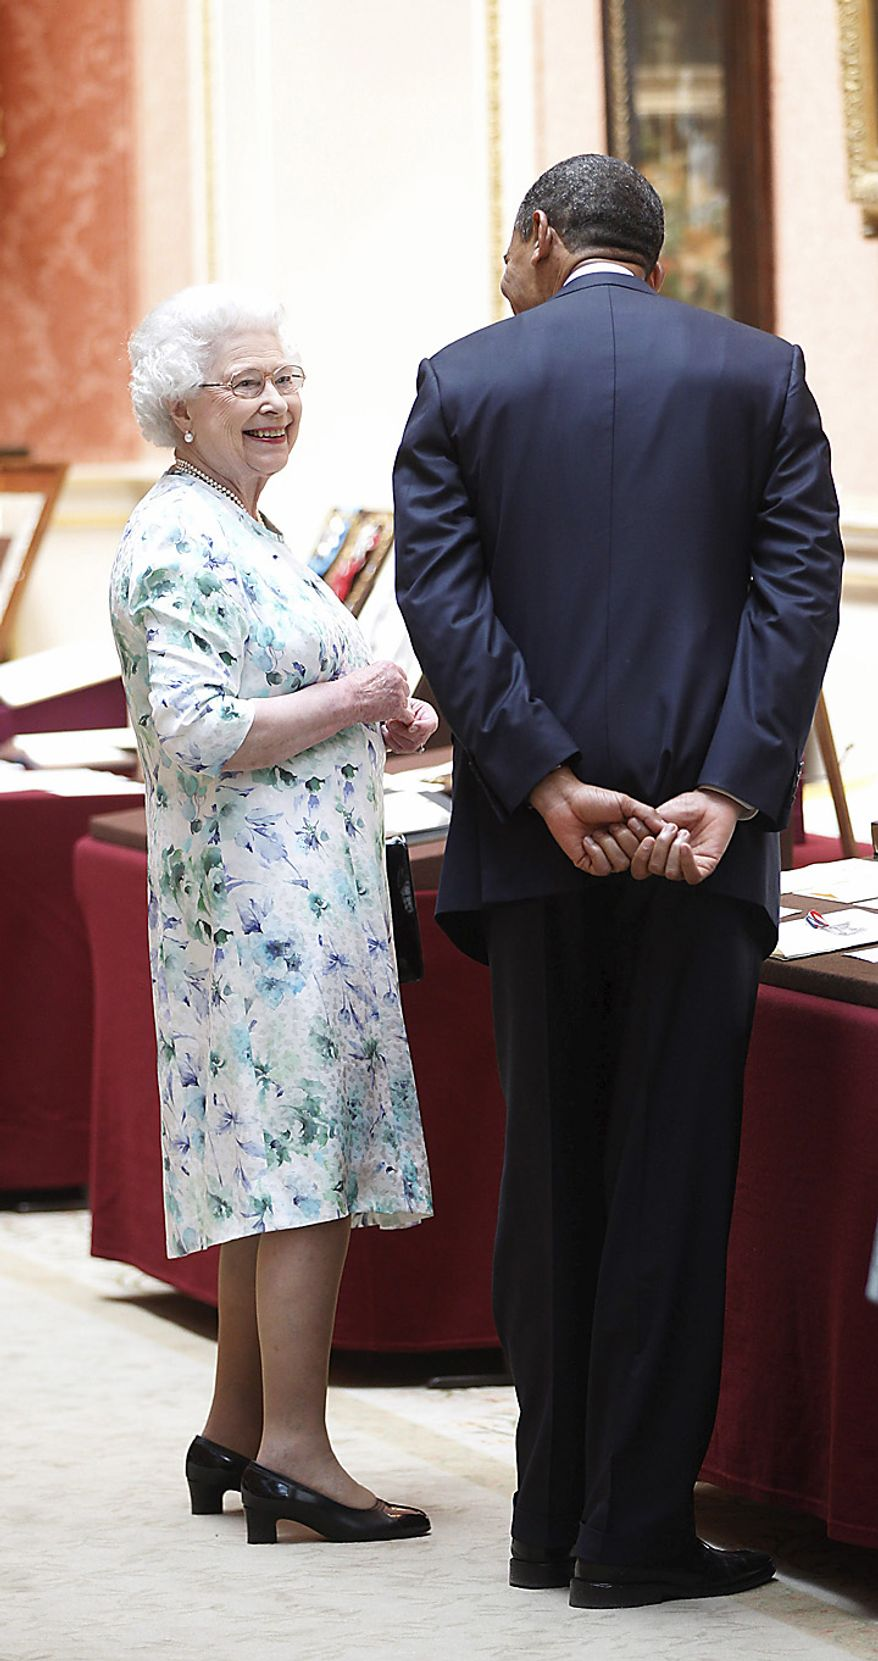 President Obama talks with Britain's Queen Elizabeth II during a tour of the Queen's Gallery at Buckingham Palace in London on Tuesday, May 24, 2011. (AP Photo/Charles Dharapak)